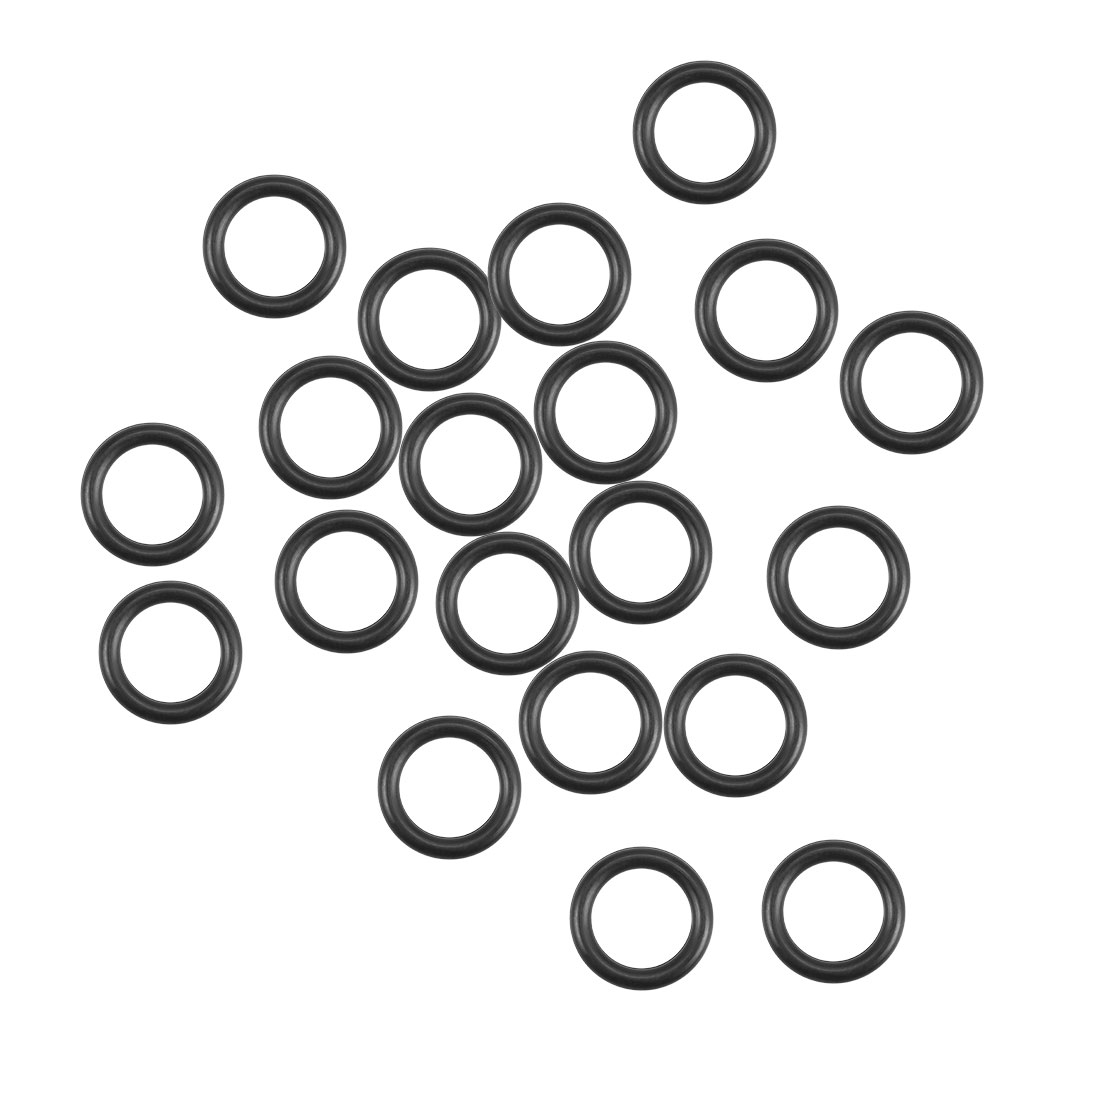 O-Rings Nitrile Rubber 7.8mm x 11.4mm x 1.8mm Round Seal Gasket 20 Pcs